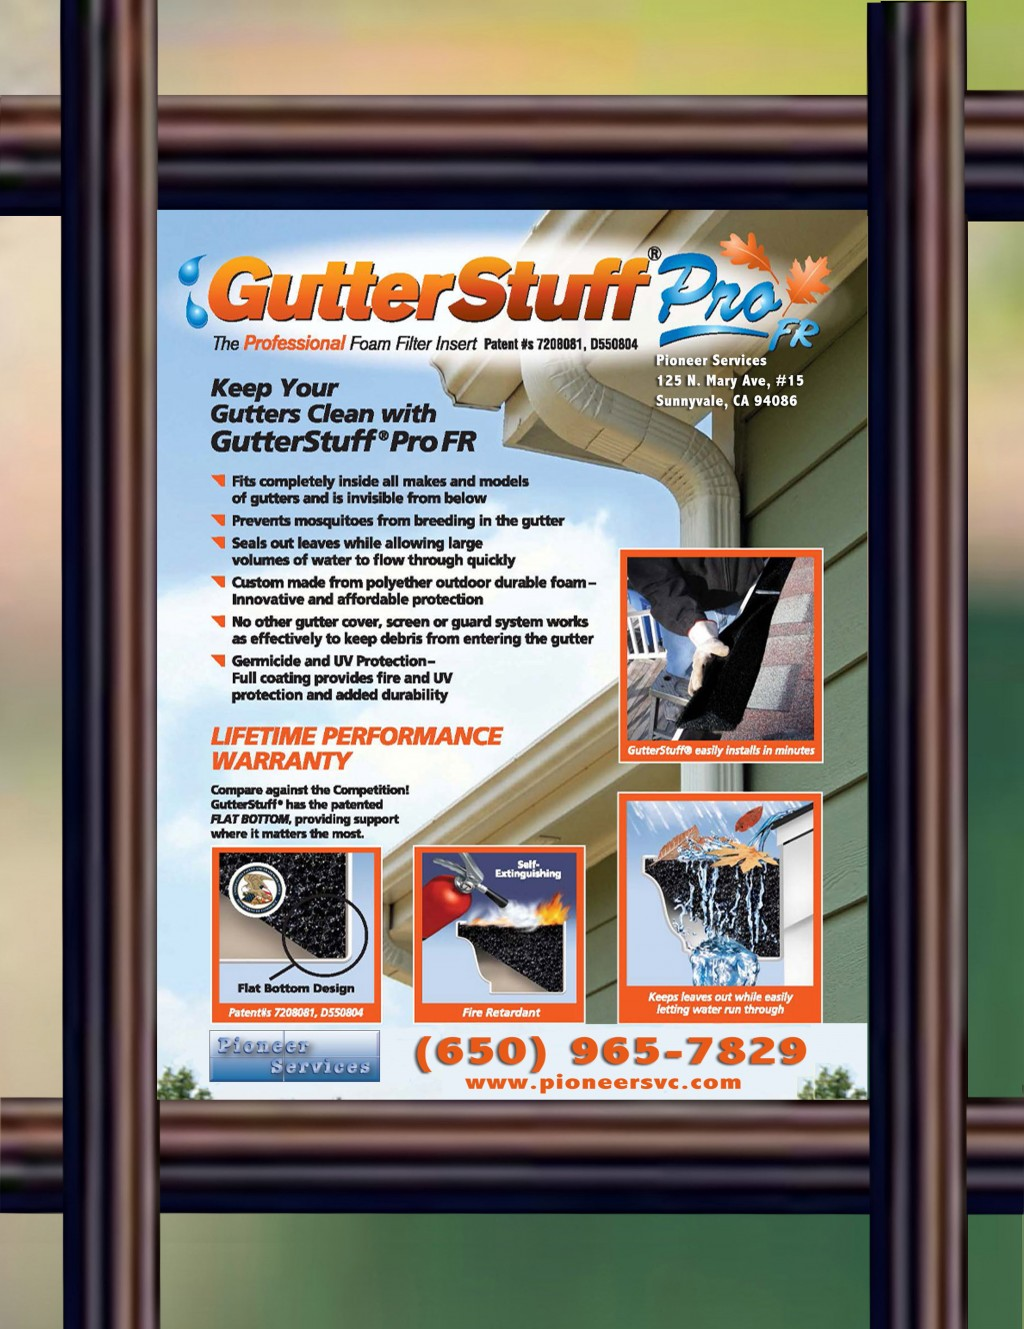 GutterStuffProFr – How to Protect Your Gutters!